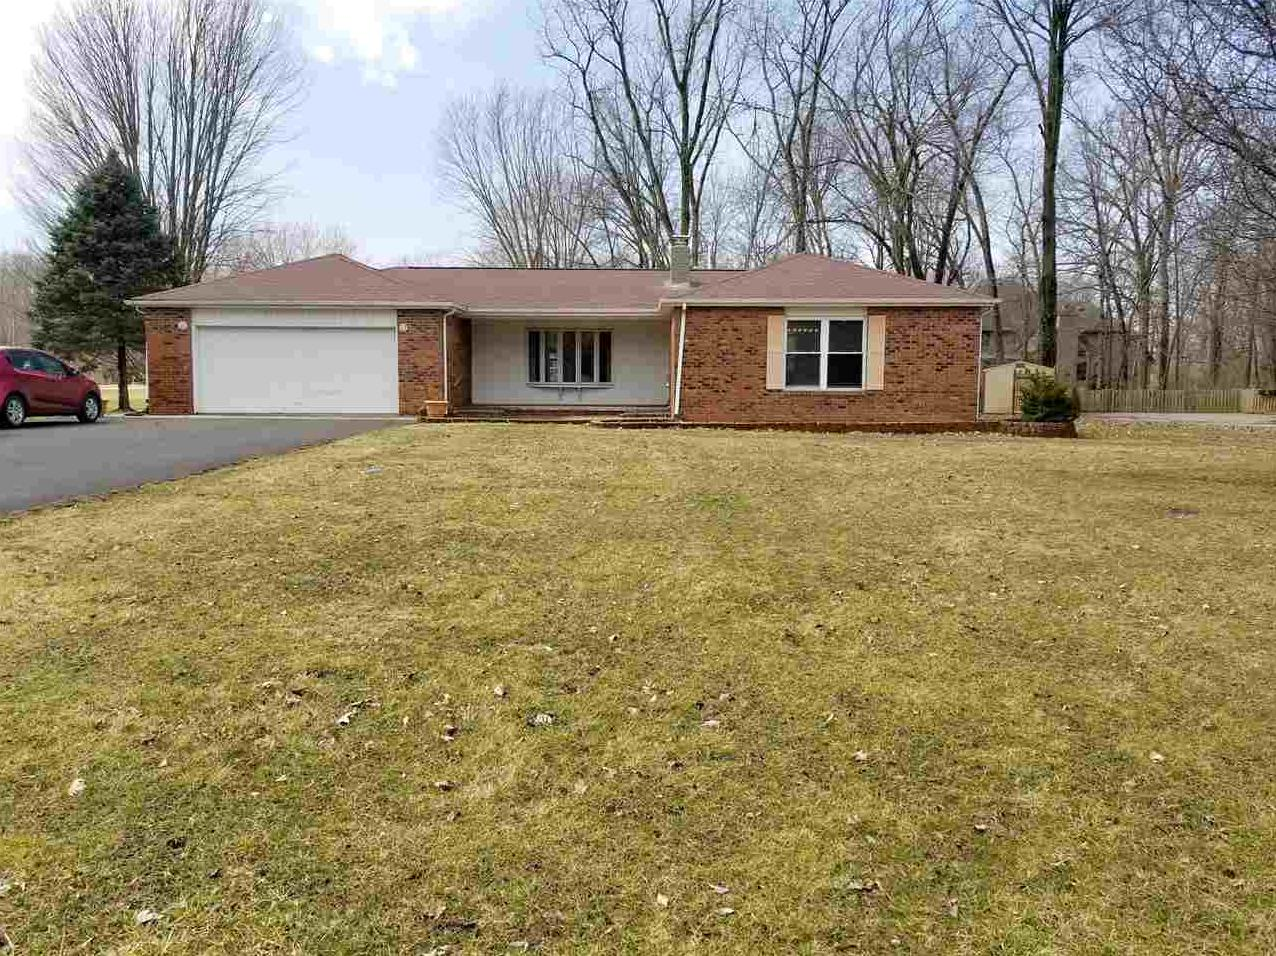 Photo of 17329 Cardinal Lane Marshall IL 62441